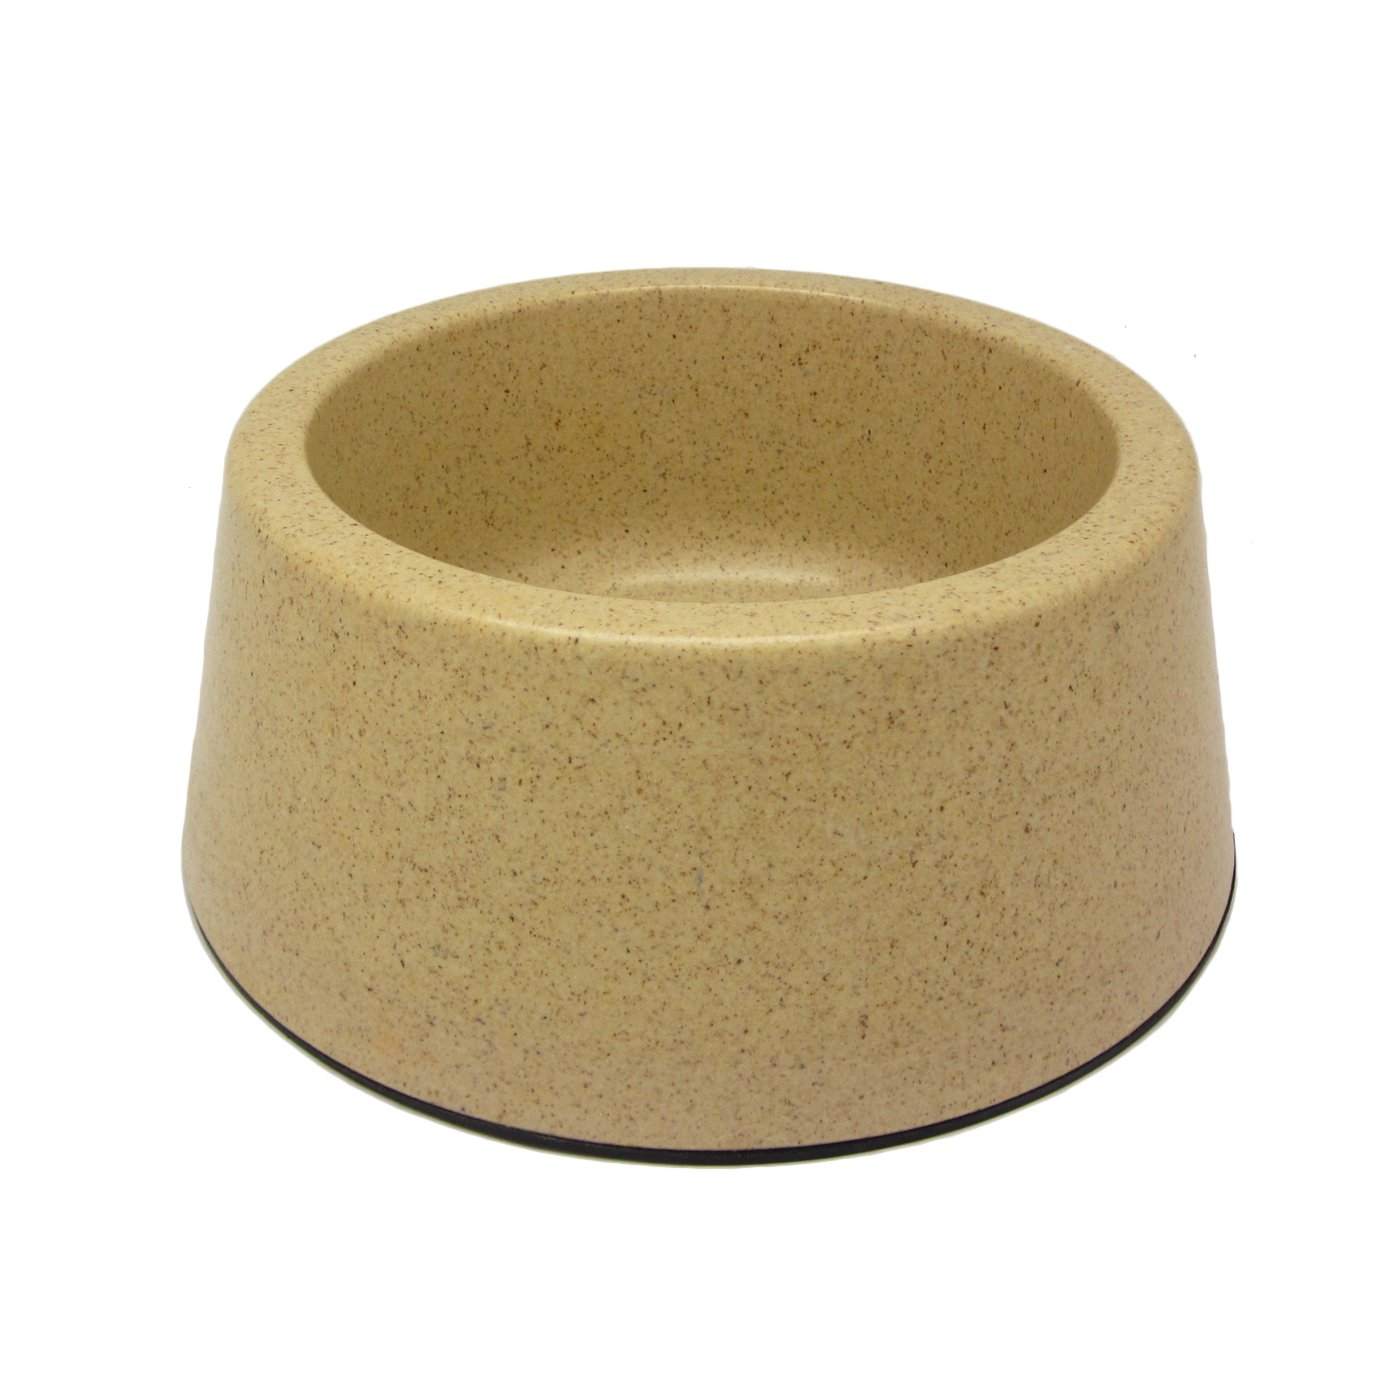 Alfie Pet by Petoga Couture - Kima Bamboo Fiber Eco-Friendly Pet Round Bowl (for Dogs & Cats) - Color: Beige, Size: XL